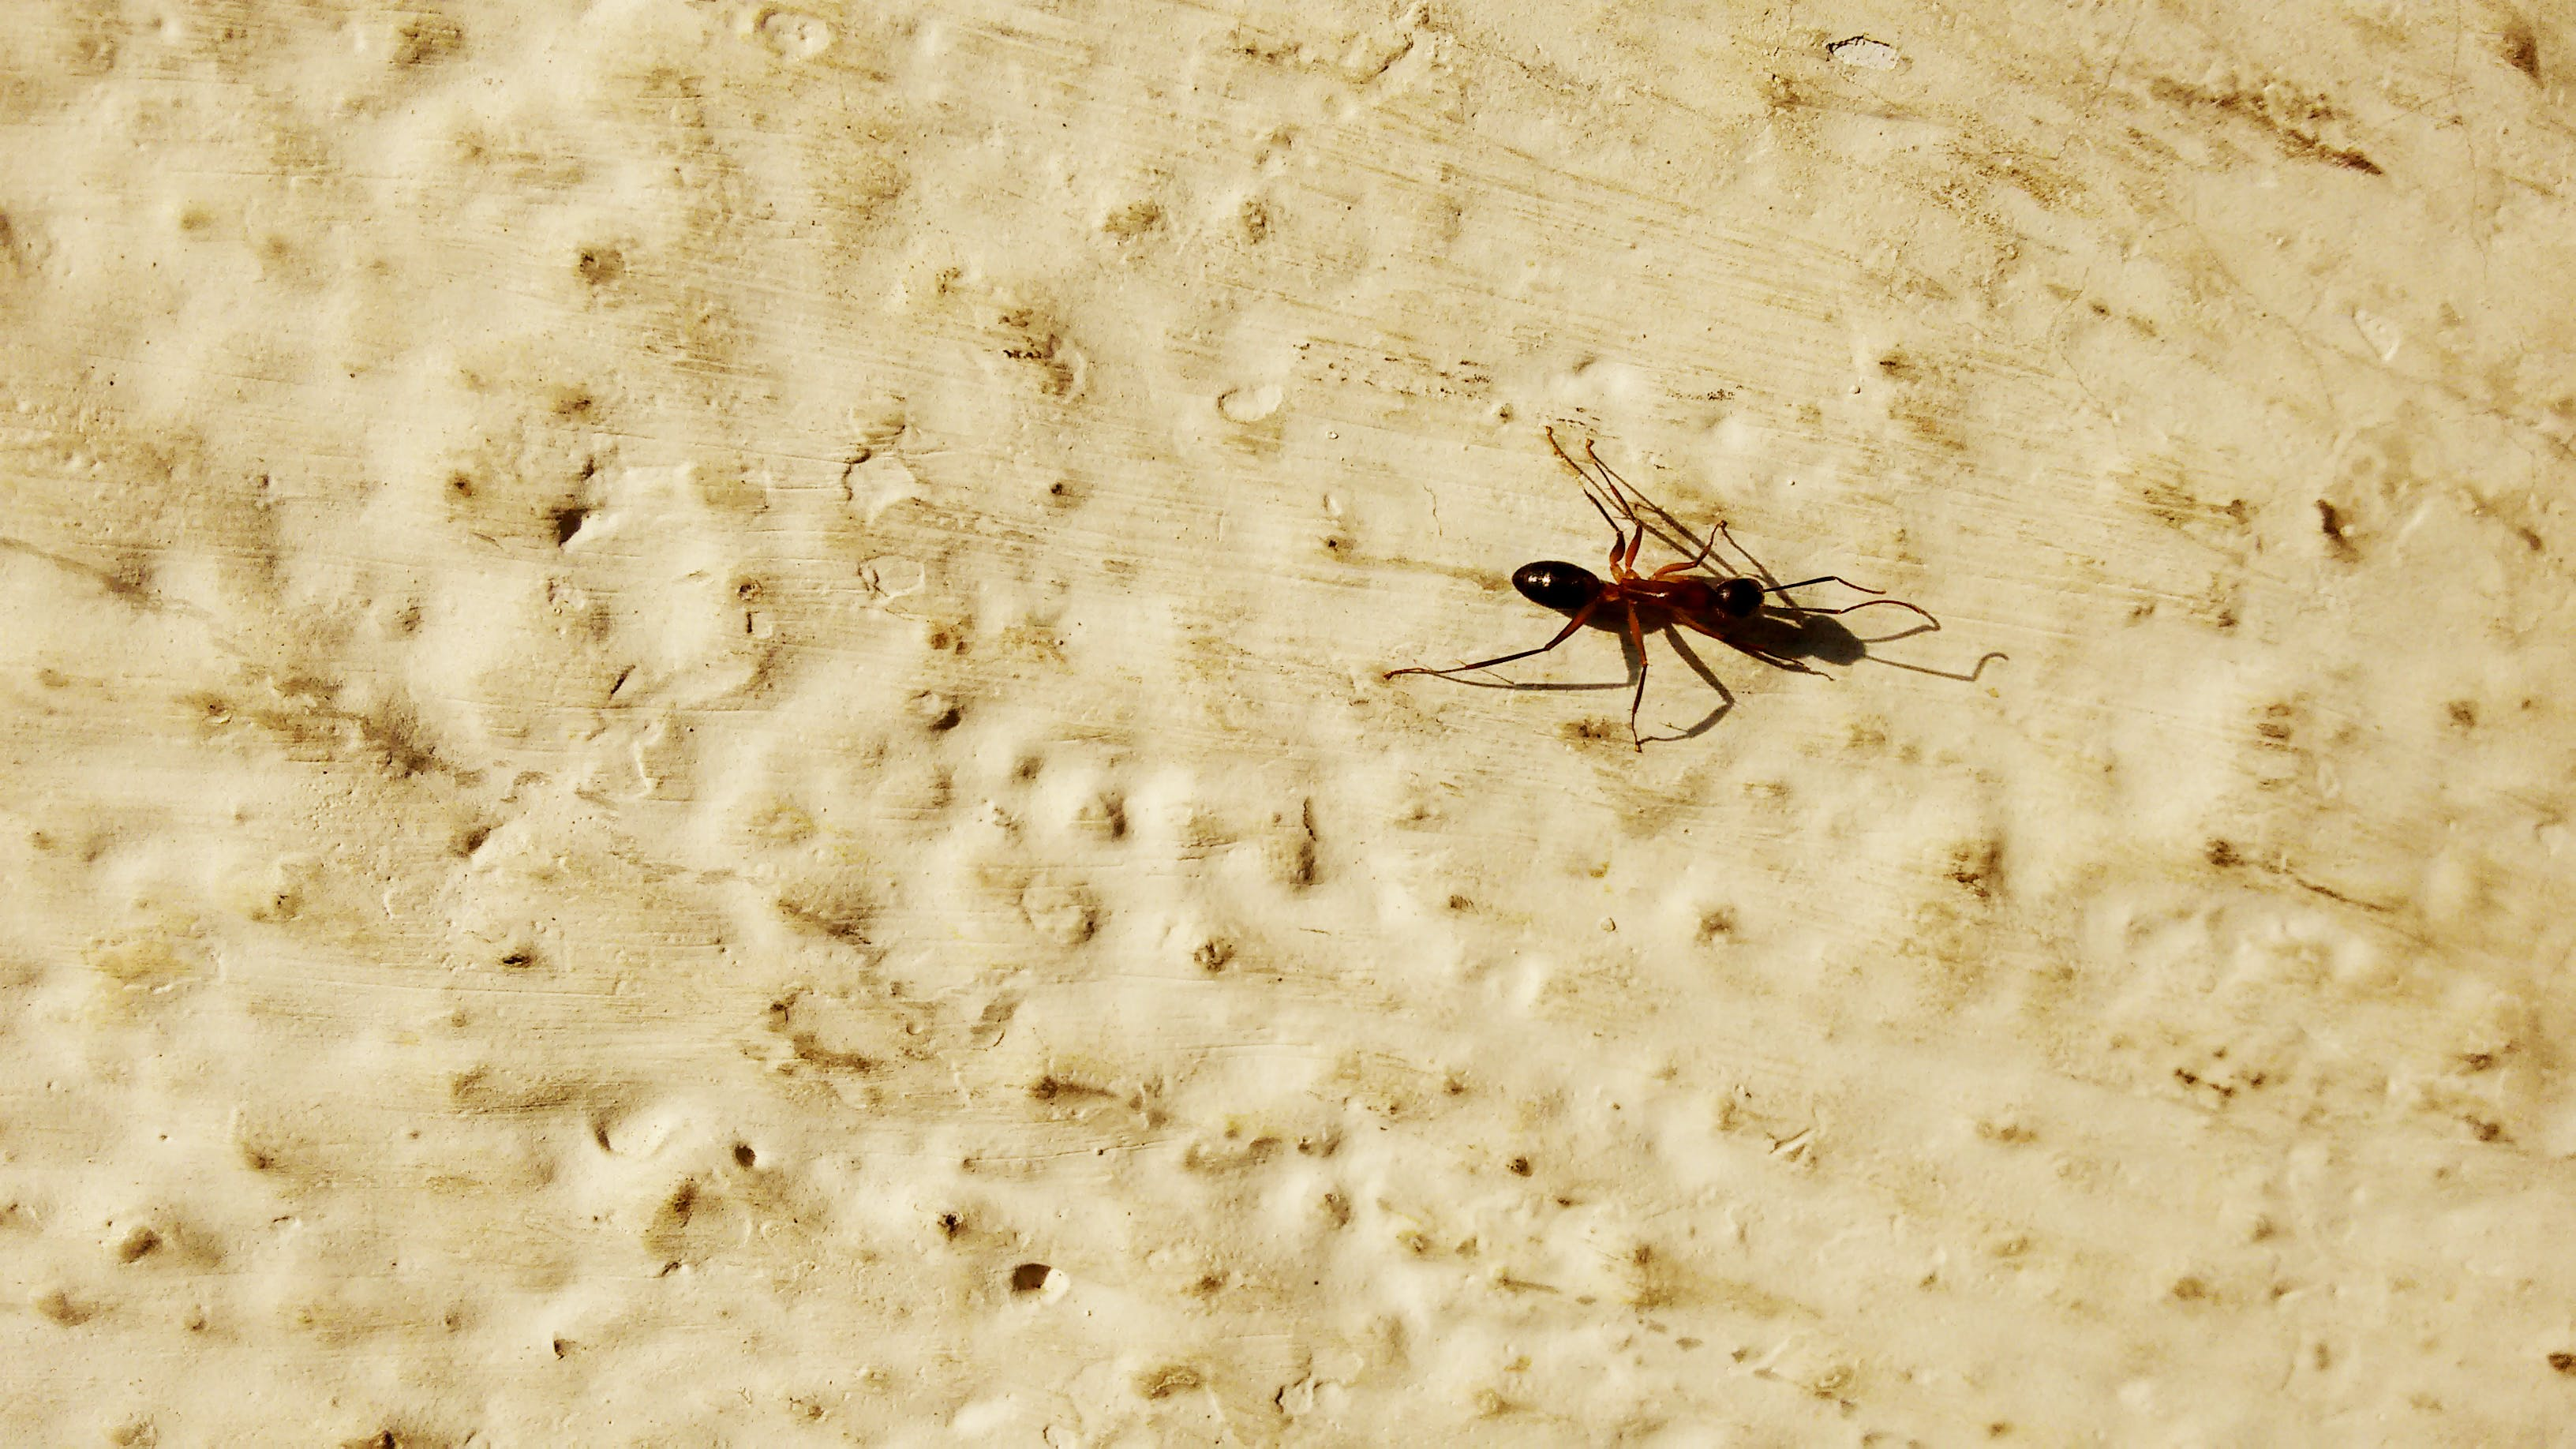 Free stock photo of ant, hd background, sun, wallpaper